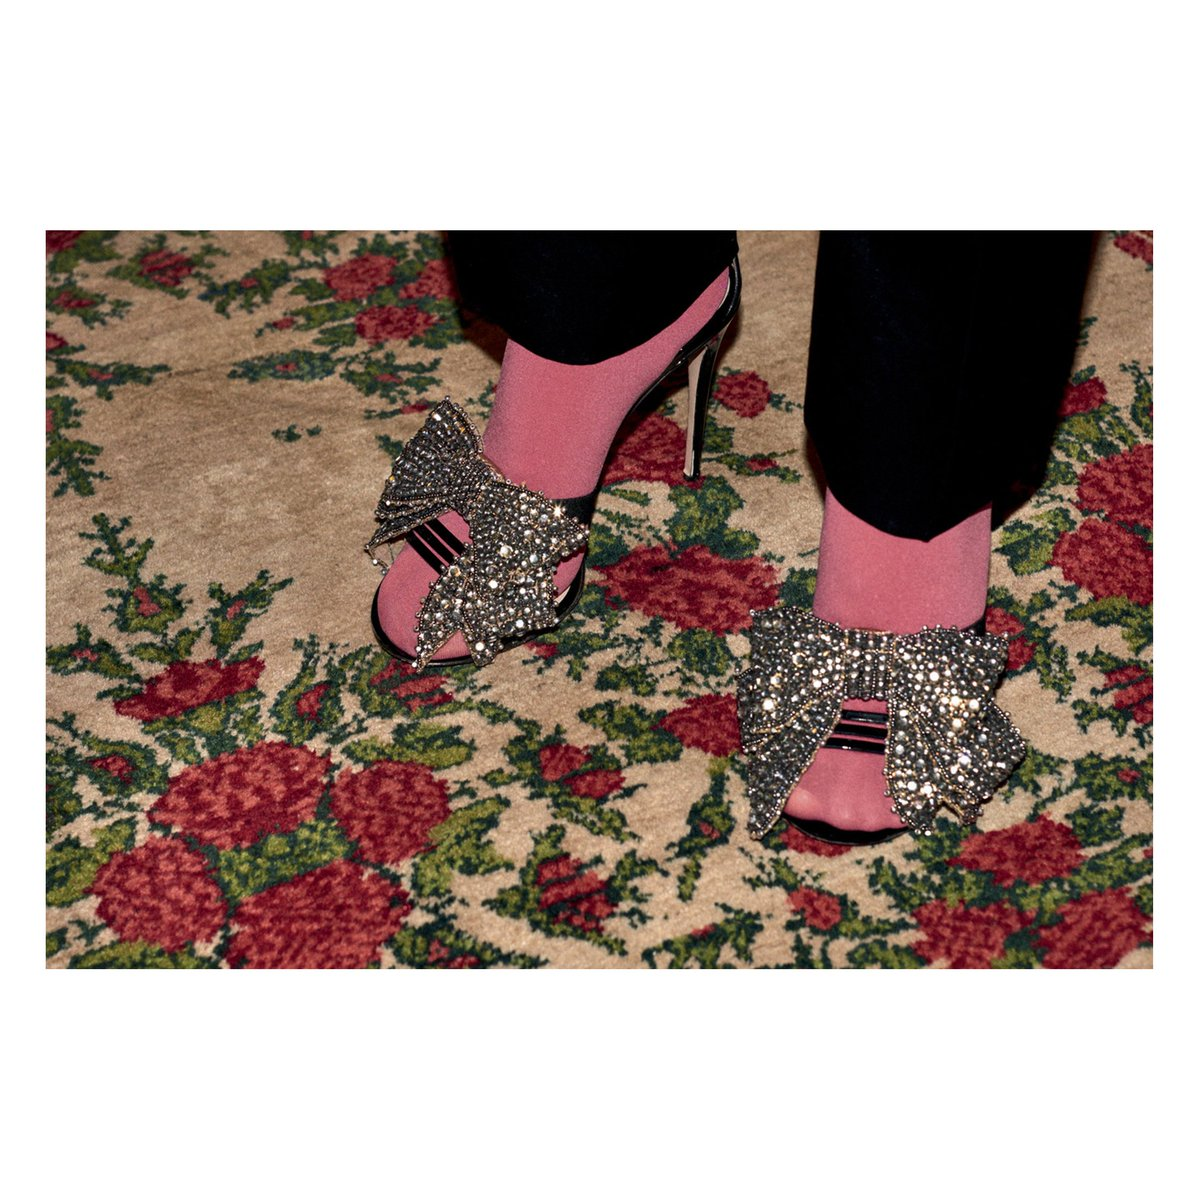 0a31bf5fe Removable crystal bows decorate leather sandals and satin boots and slides  from #GucciPreFall17 by #AlessandroMichele.pic.twitter.com/vm1i6SlAdc